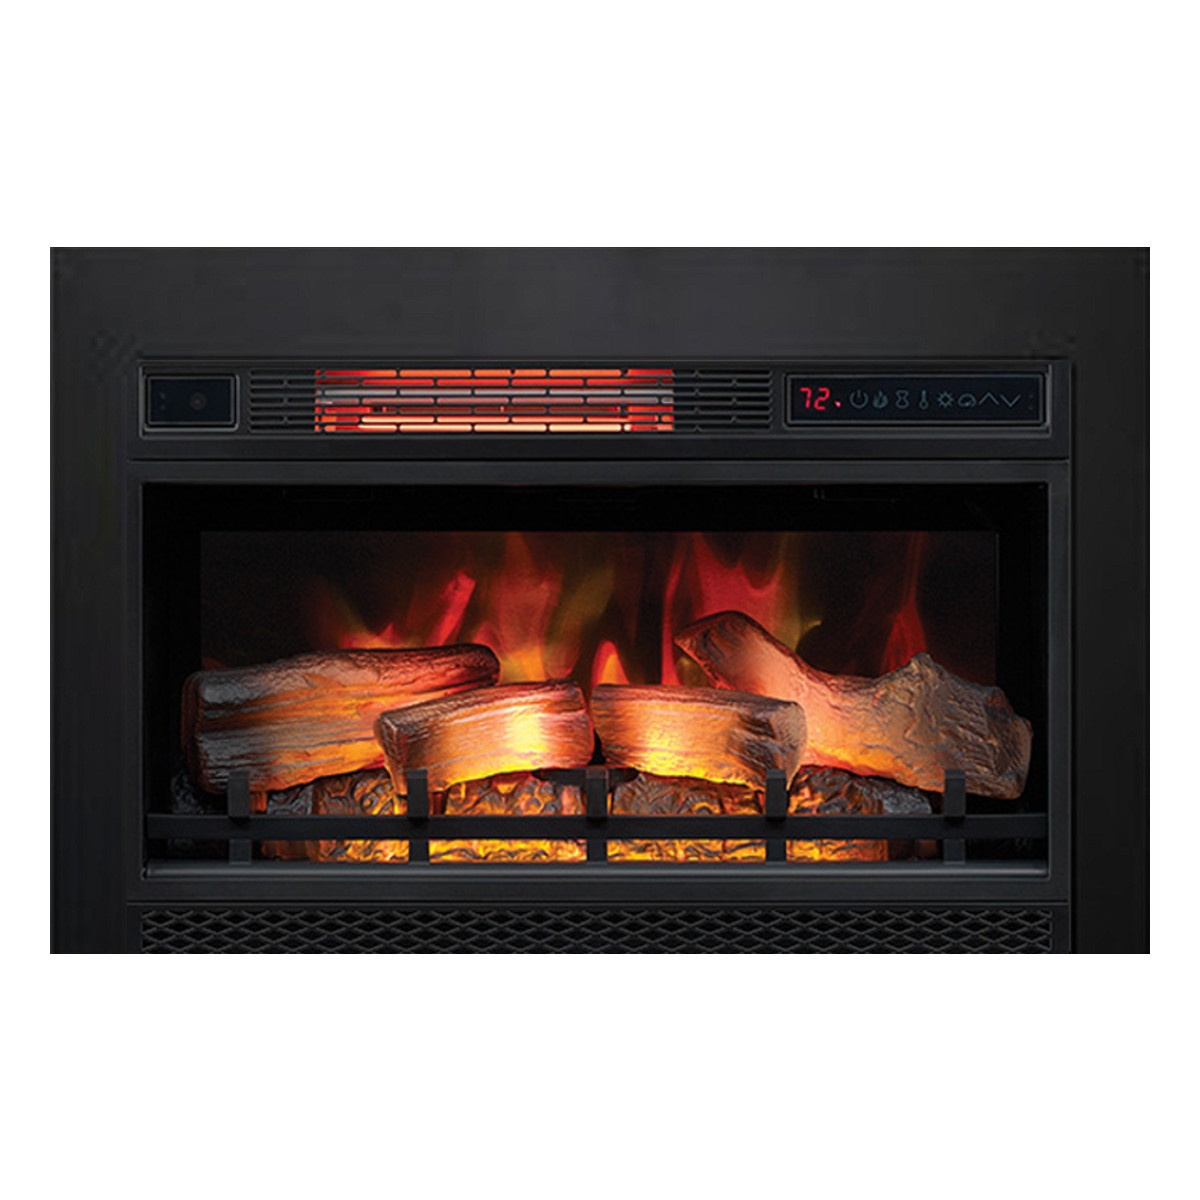 Classic Flame 26 26ii042fgl Electric Fireplace Insert W